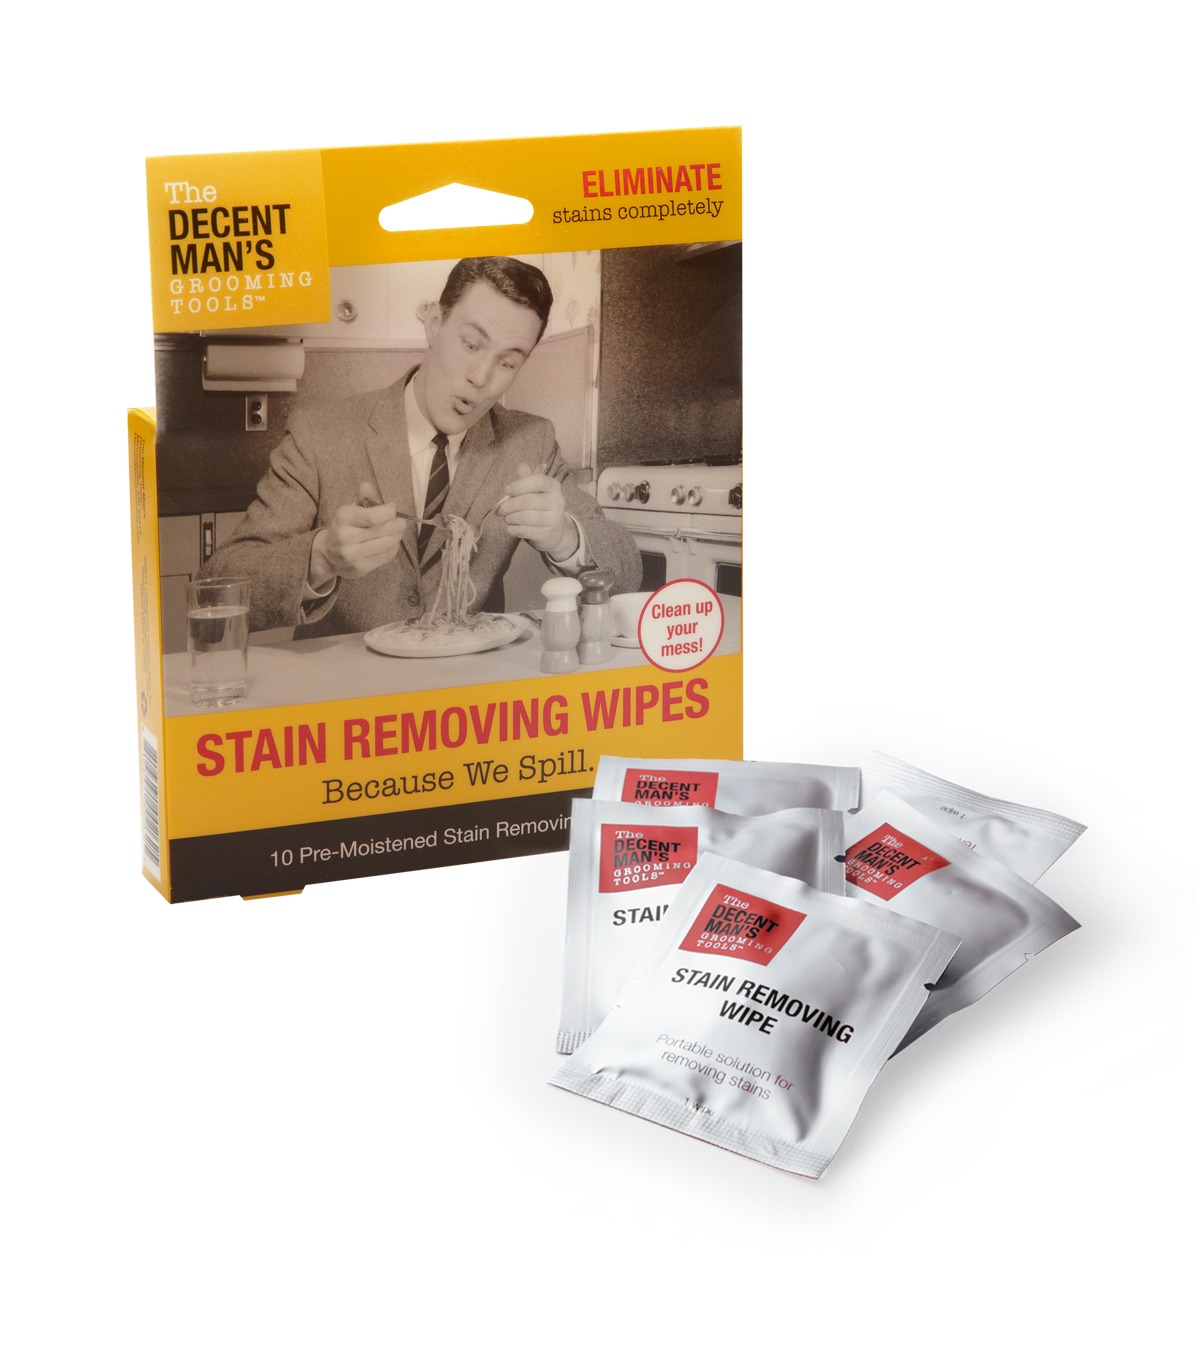 The Decent Man's Grooming Tools-Stain Removing Wipes